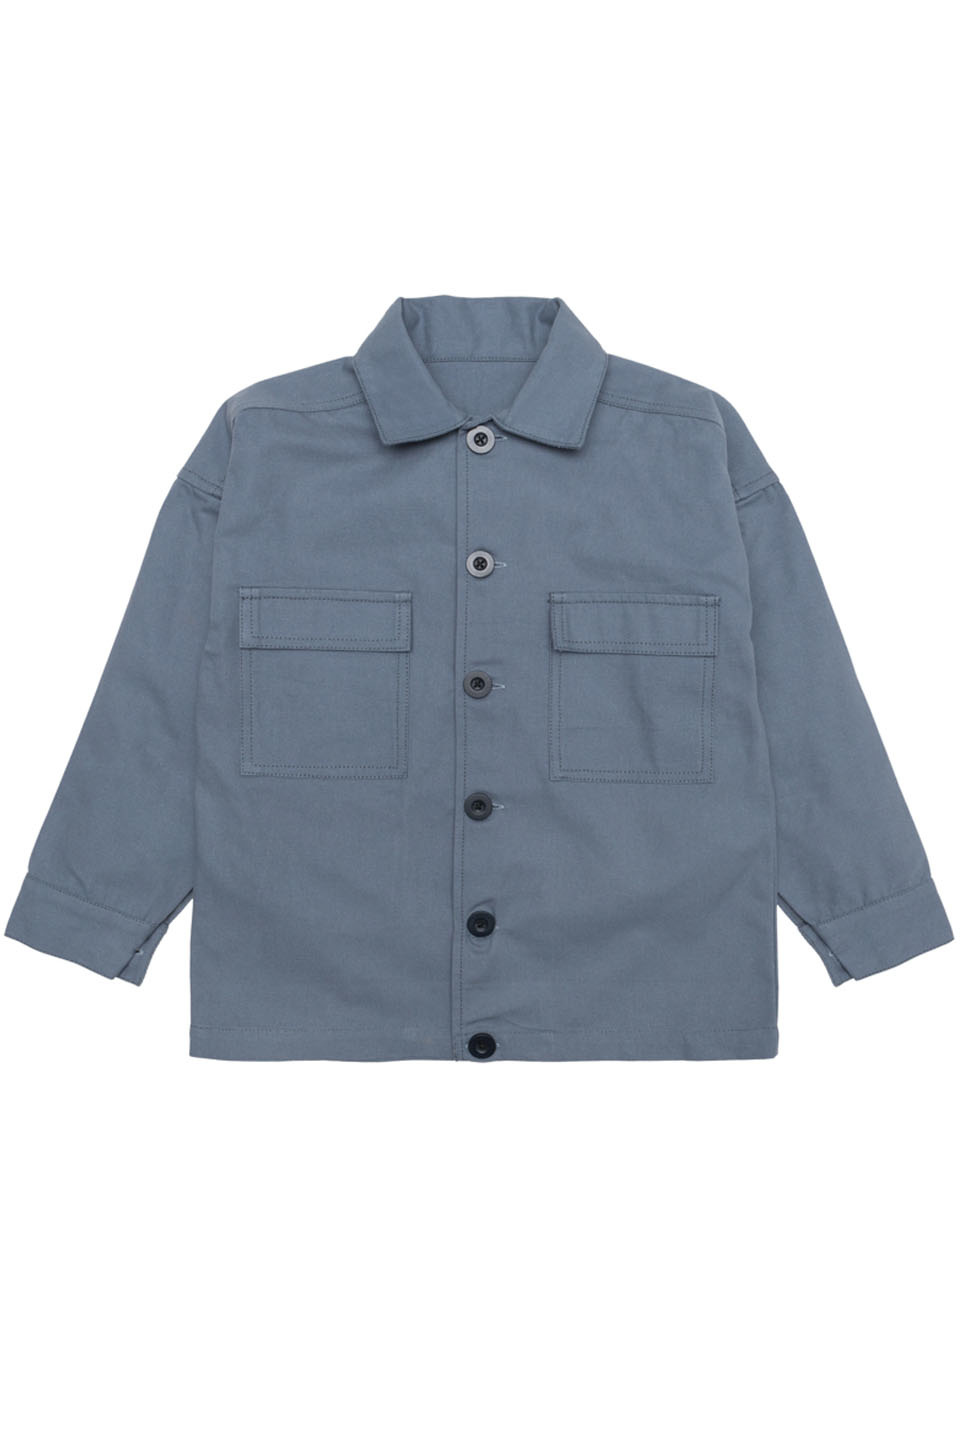 Adam jacket with patchpockets-1